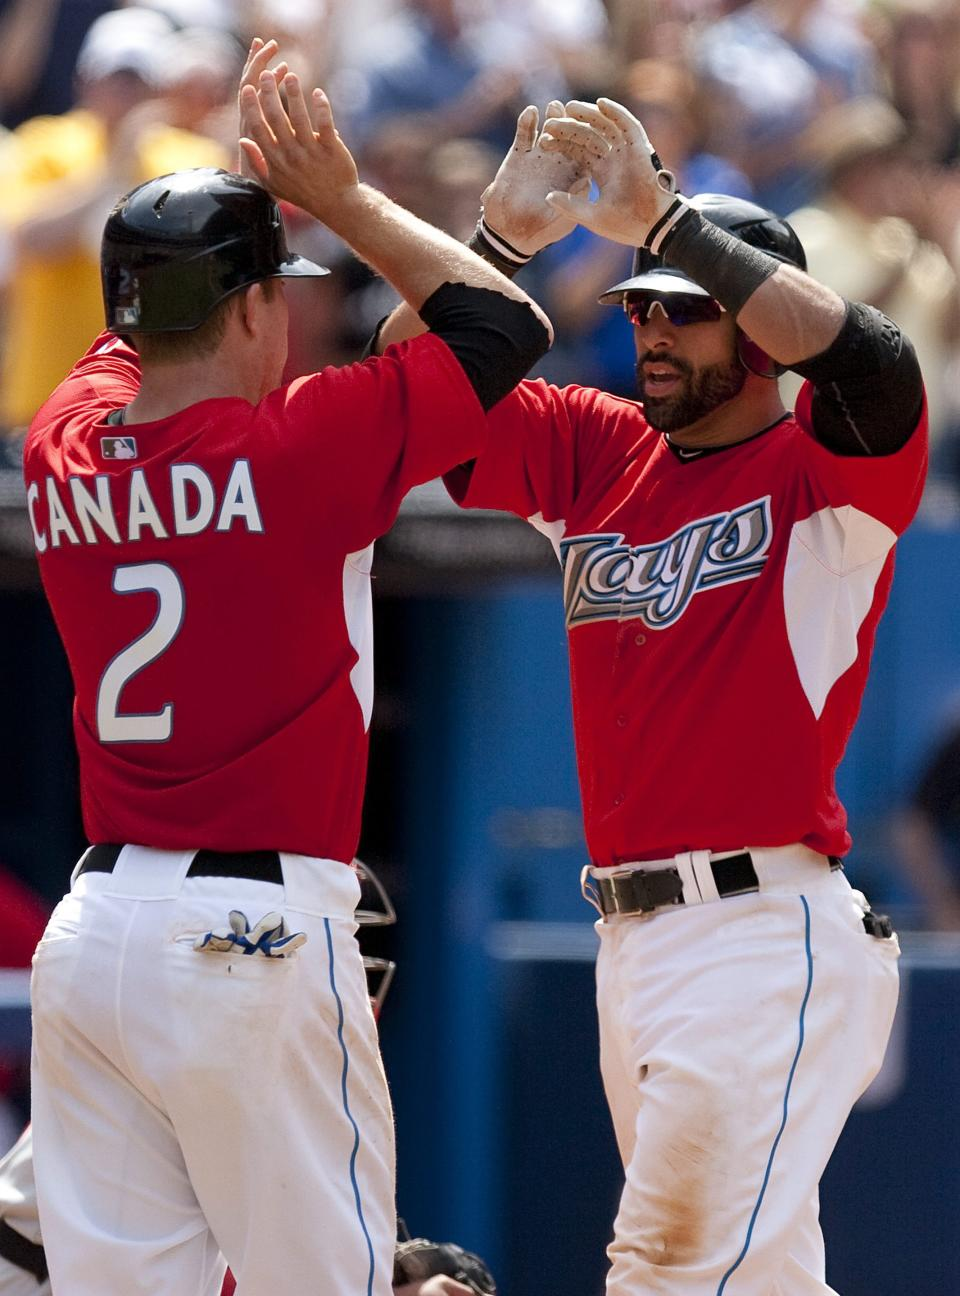 Toronto Blue Jays' Jose Bautista, right, celebrates hitting a two-run home run against Philadelphia Phillies with teammate Aaron Hill during the seventh inning of an interleague baseball game in Toronto on Friday, June 1, 2011. (AP Photo/The Canadian Press, Chris Young)